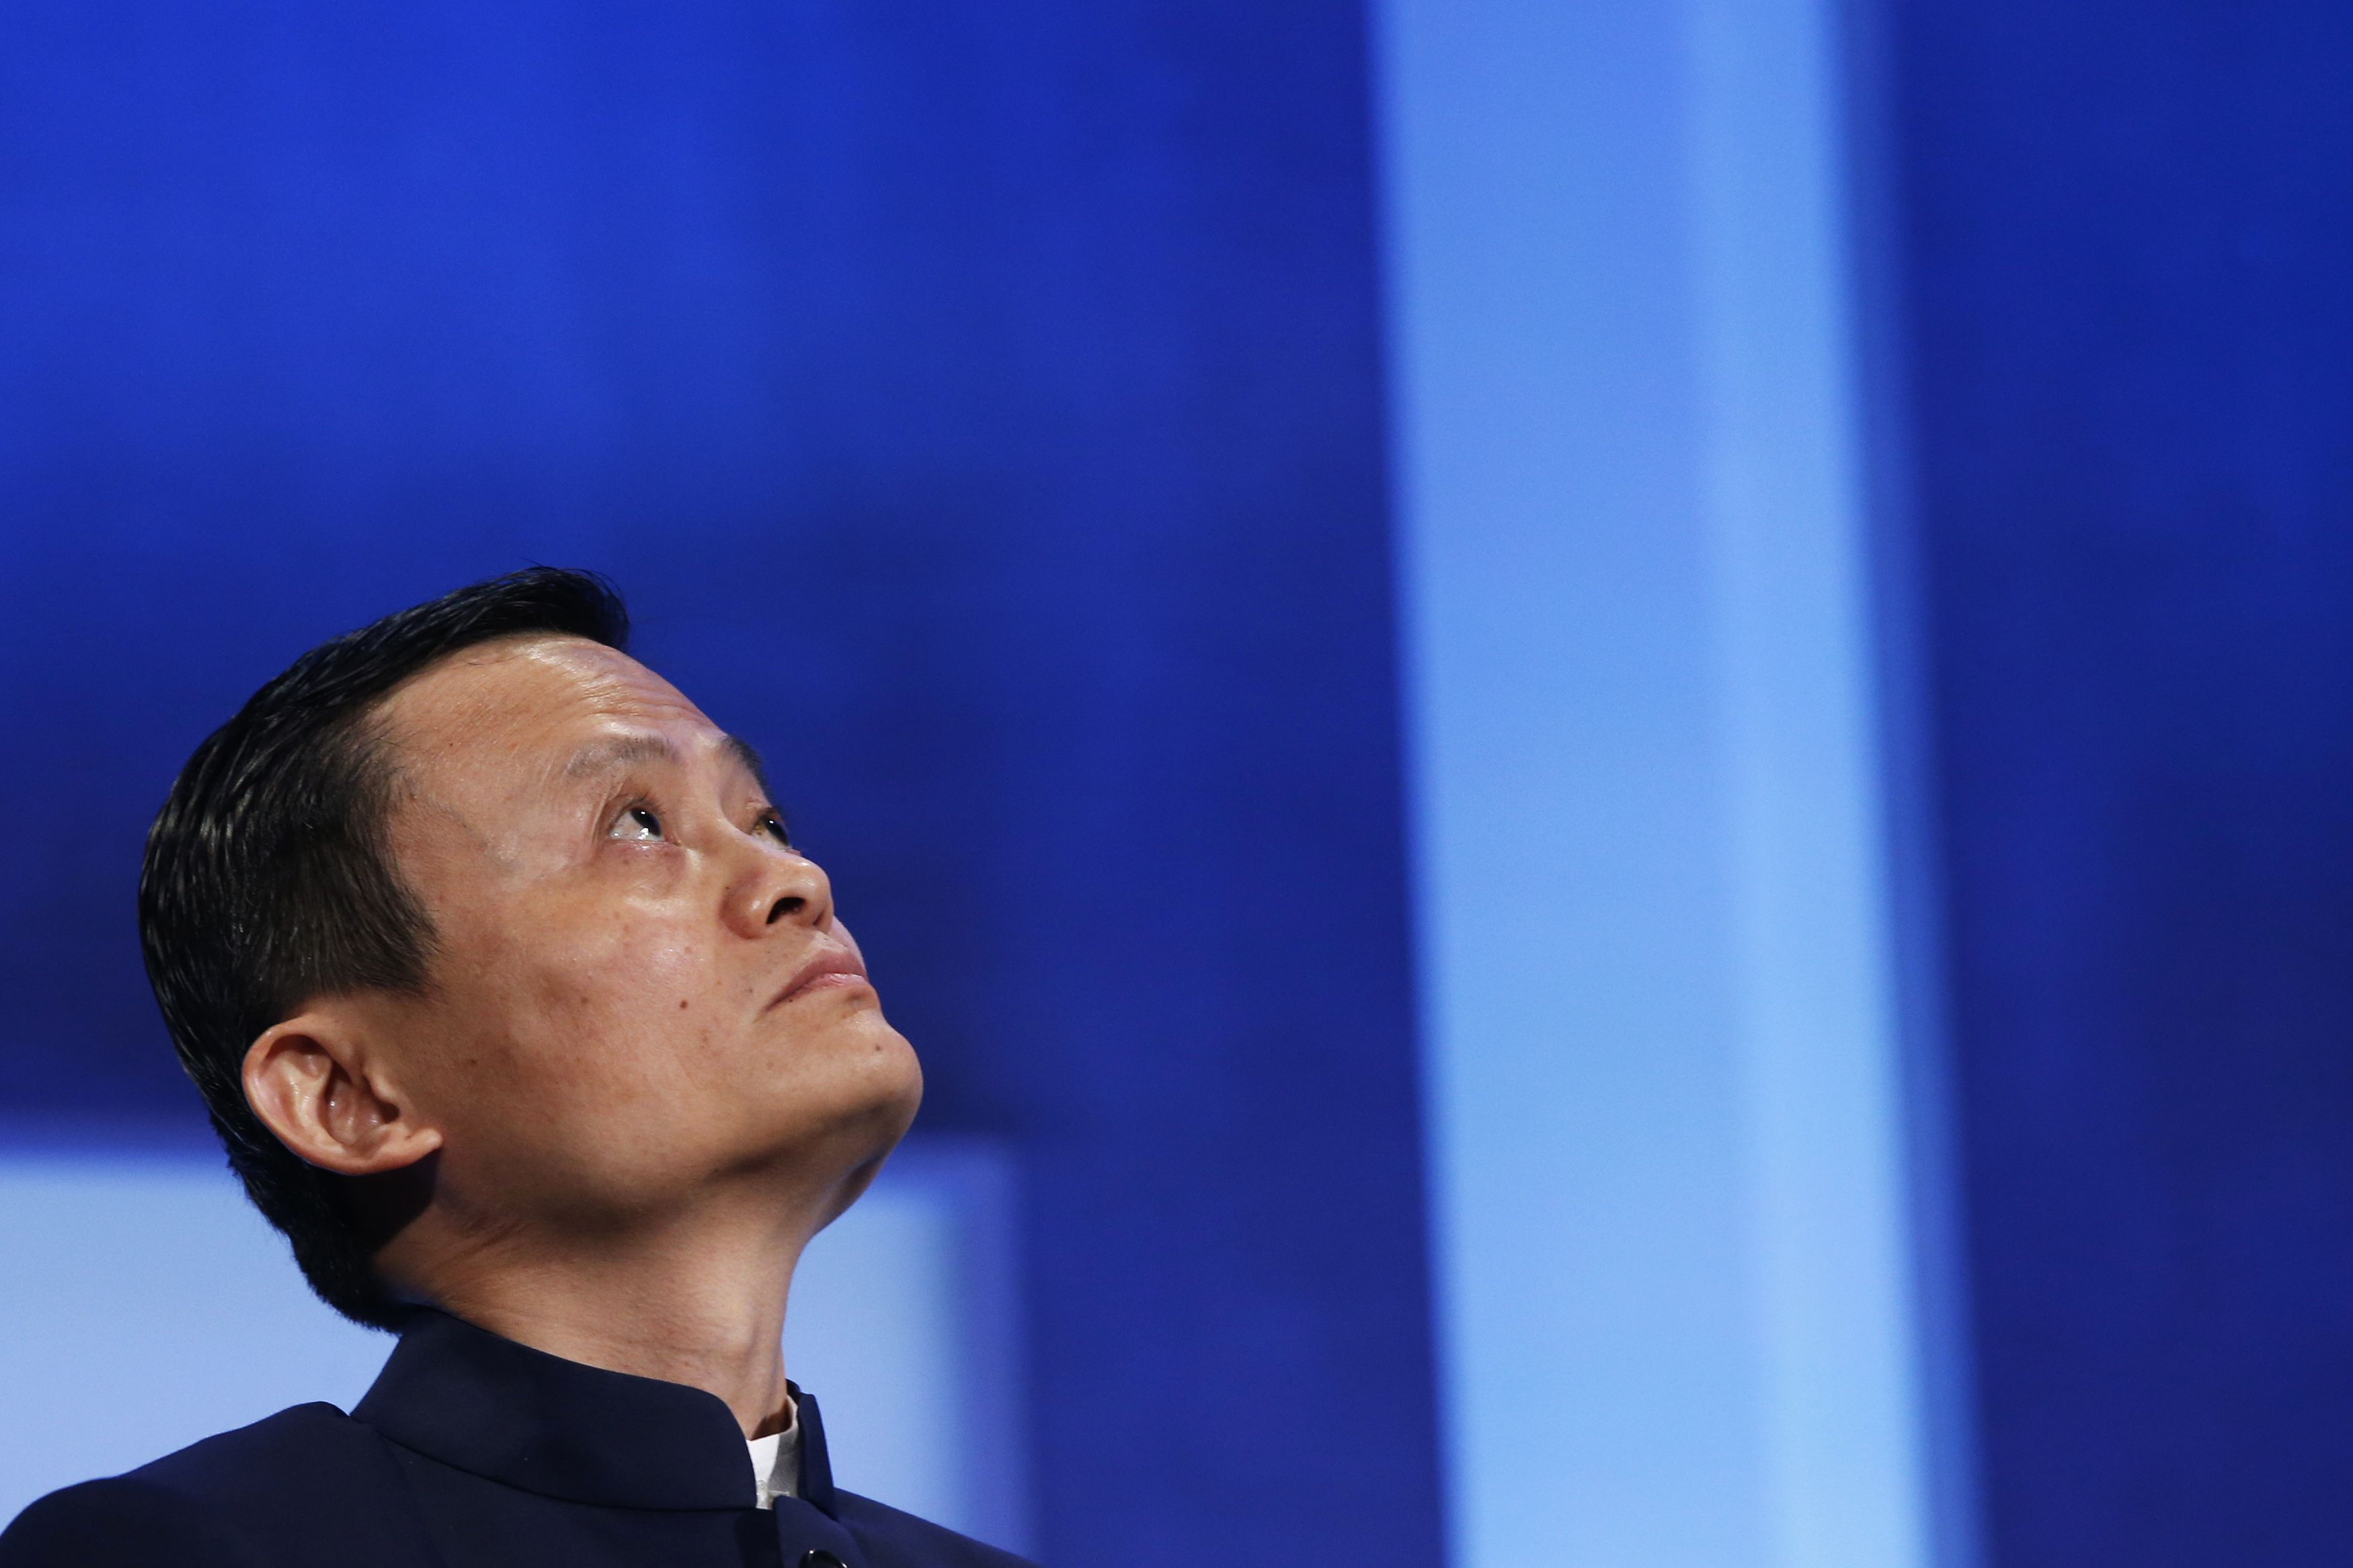 """Alibaba Group Holding Ltd founder Jack Ma listens to a speaker during the plenary session titled """"Valuing What Matter"""" at the Clinton Global Initiative 2014 (CGI) in New York, September 23, 2014. The CGI was created by former U.S. President Bill Clinton in 2005 to gather global leaders to discuss solutions to the world's problems. REUTERS/Shannon Stapleton (UNITED STATES - Tags: POLITICS BUSINESS SCIENCE TECHNOLOGY) - RTR47DRM"""